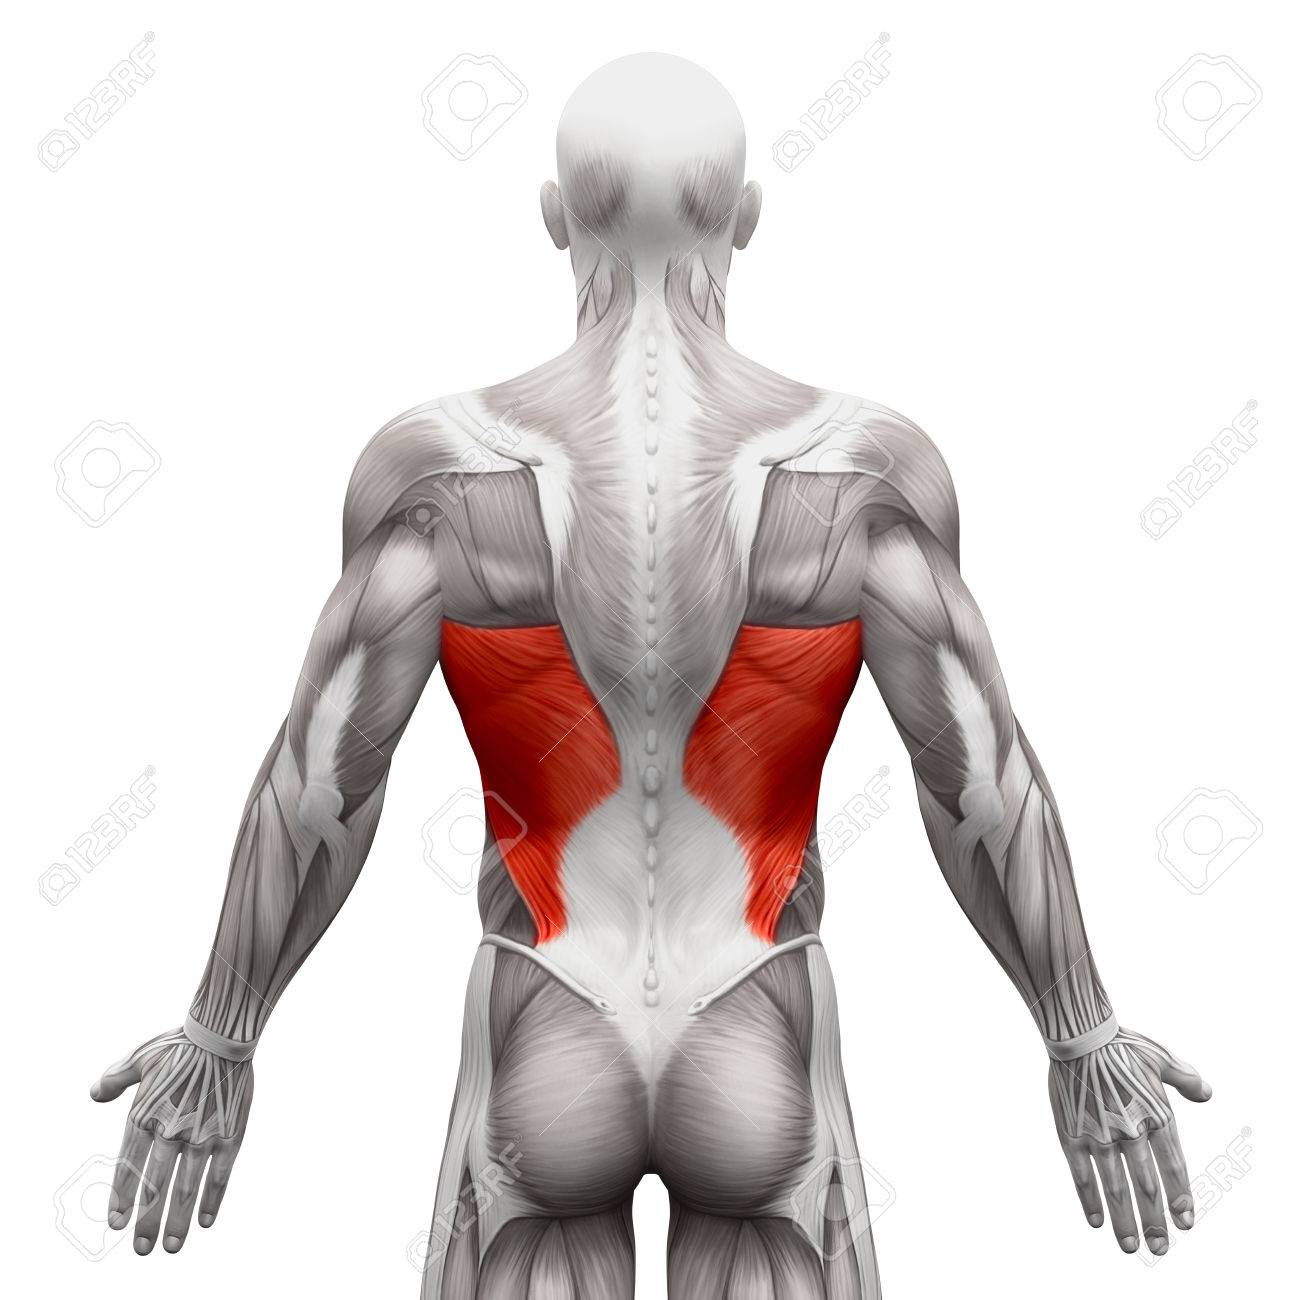 Latissimus Dorsi - Anatomy Muscles Isolated On White - 3D ...